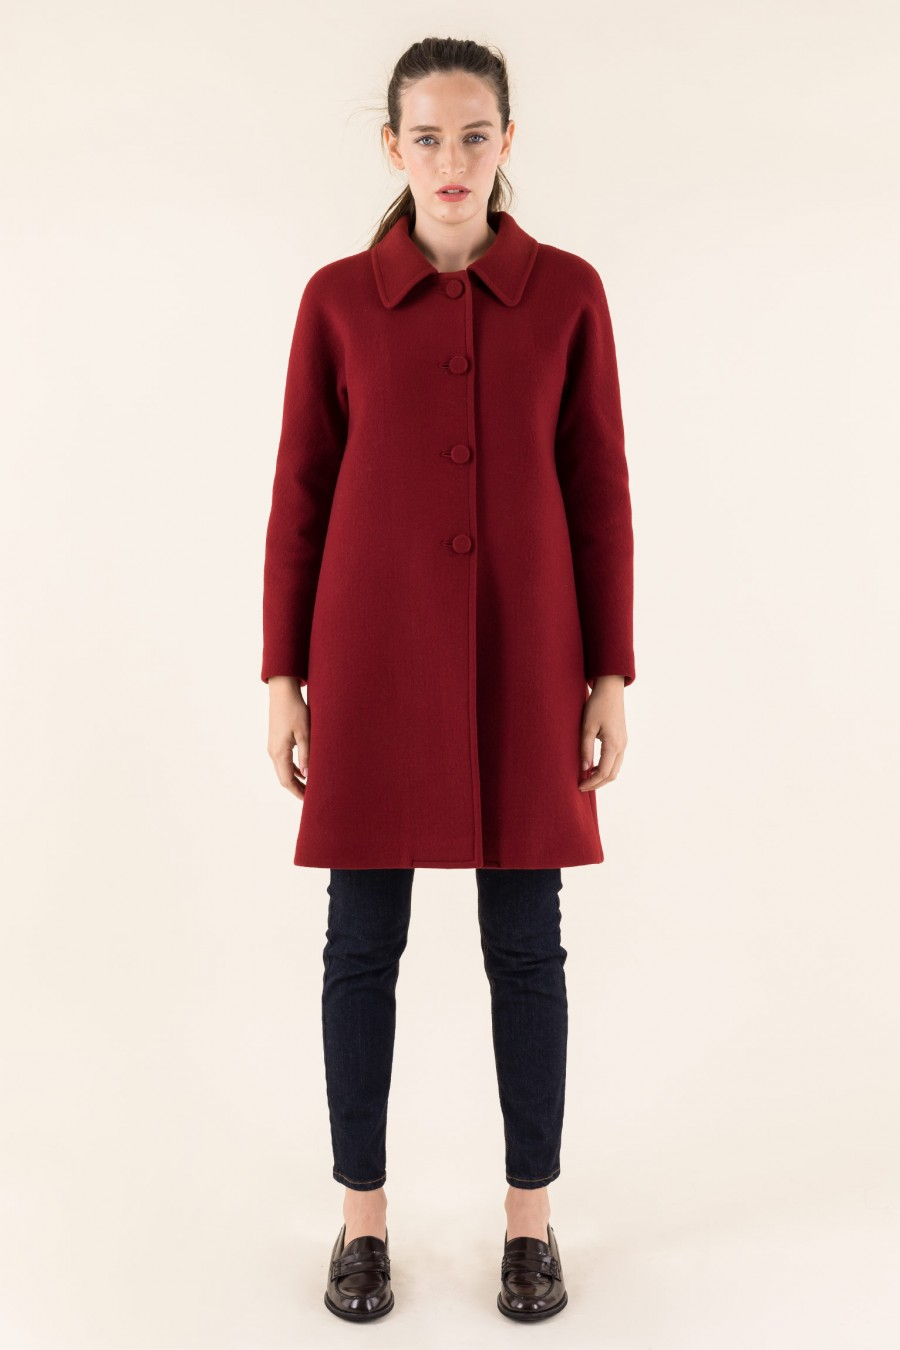 Red coat with flat buttons